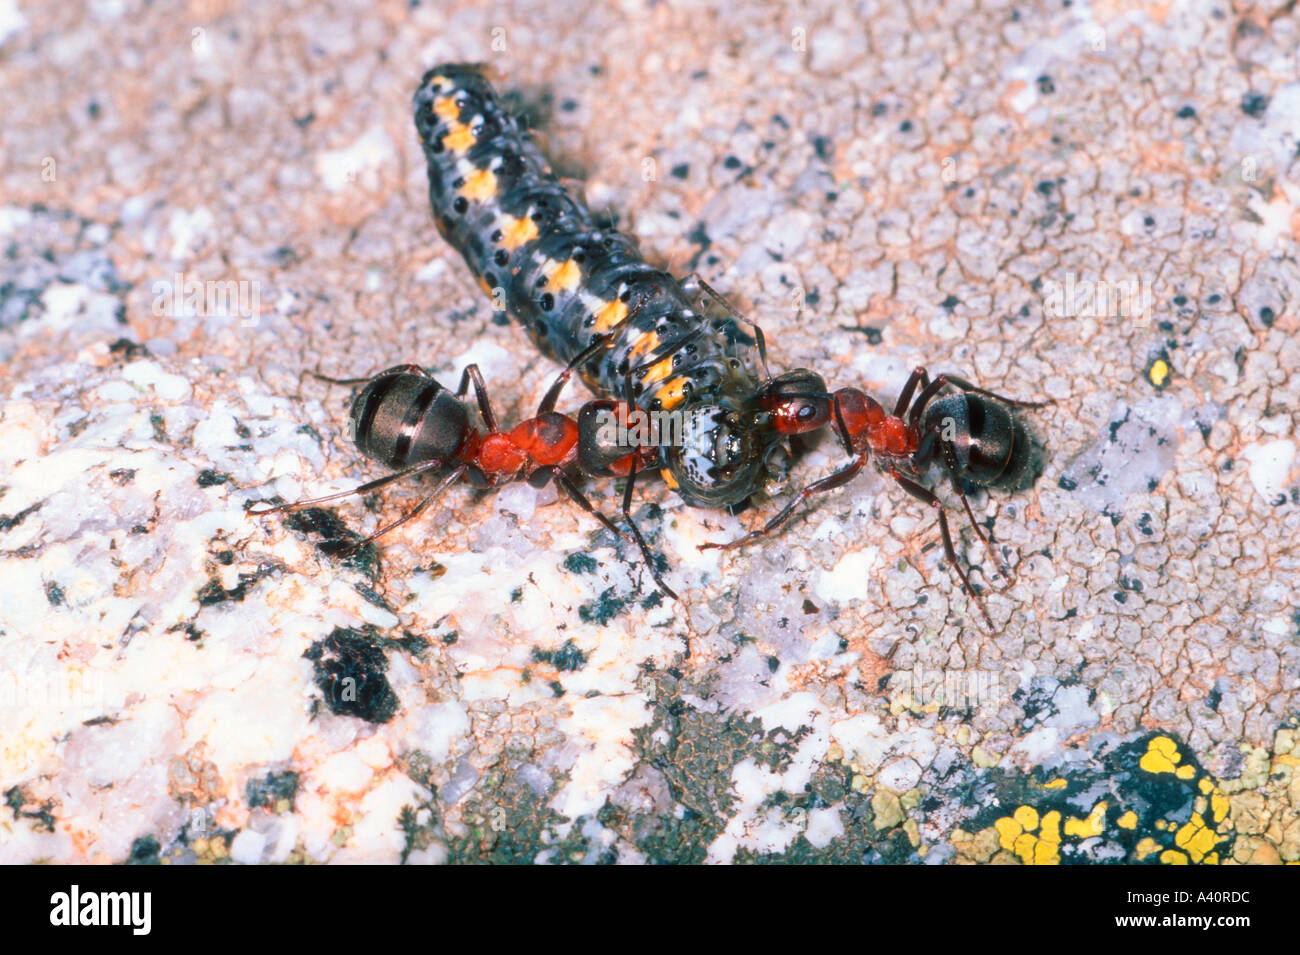 Ants Attacking Animal Stockfotos Ants Attacking Animal Bilder Alamy